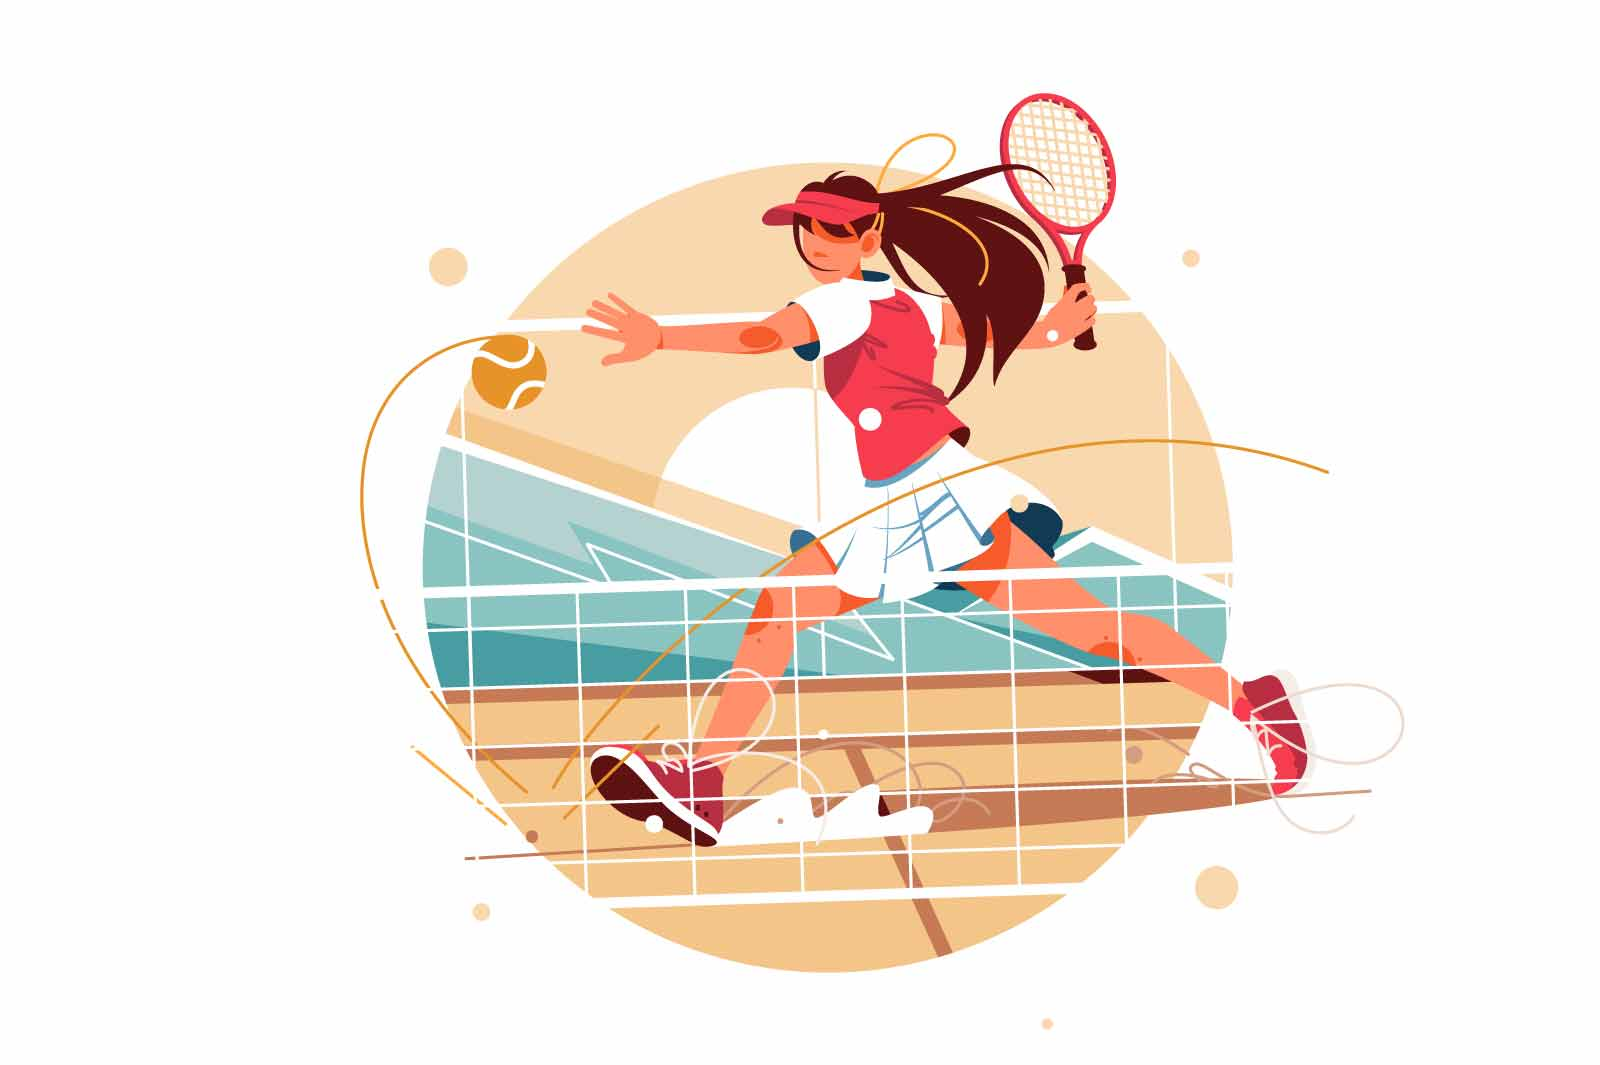 Excited young female tennis player hitting ball using tennis racket. Isolated icon concept of woman in sport playing in game performs achievement in competition. Vector illustration.